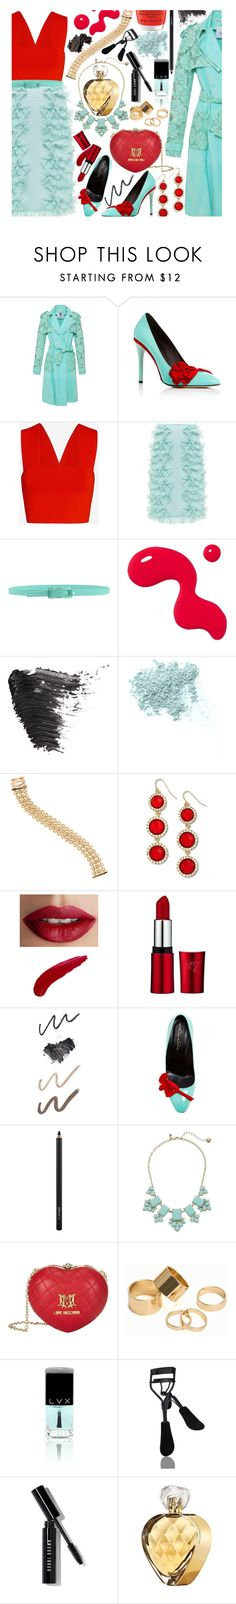 """253"" by virtual-closet-collector ❤ liked on Polyvore featuring Blumarine, Oscar de la Renta, A.L.C., Rochas, Tie-Ups, Topshop, Bare Escentuals, Cartier, Venus and TheBalm"